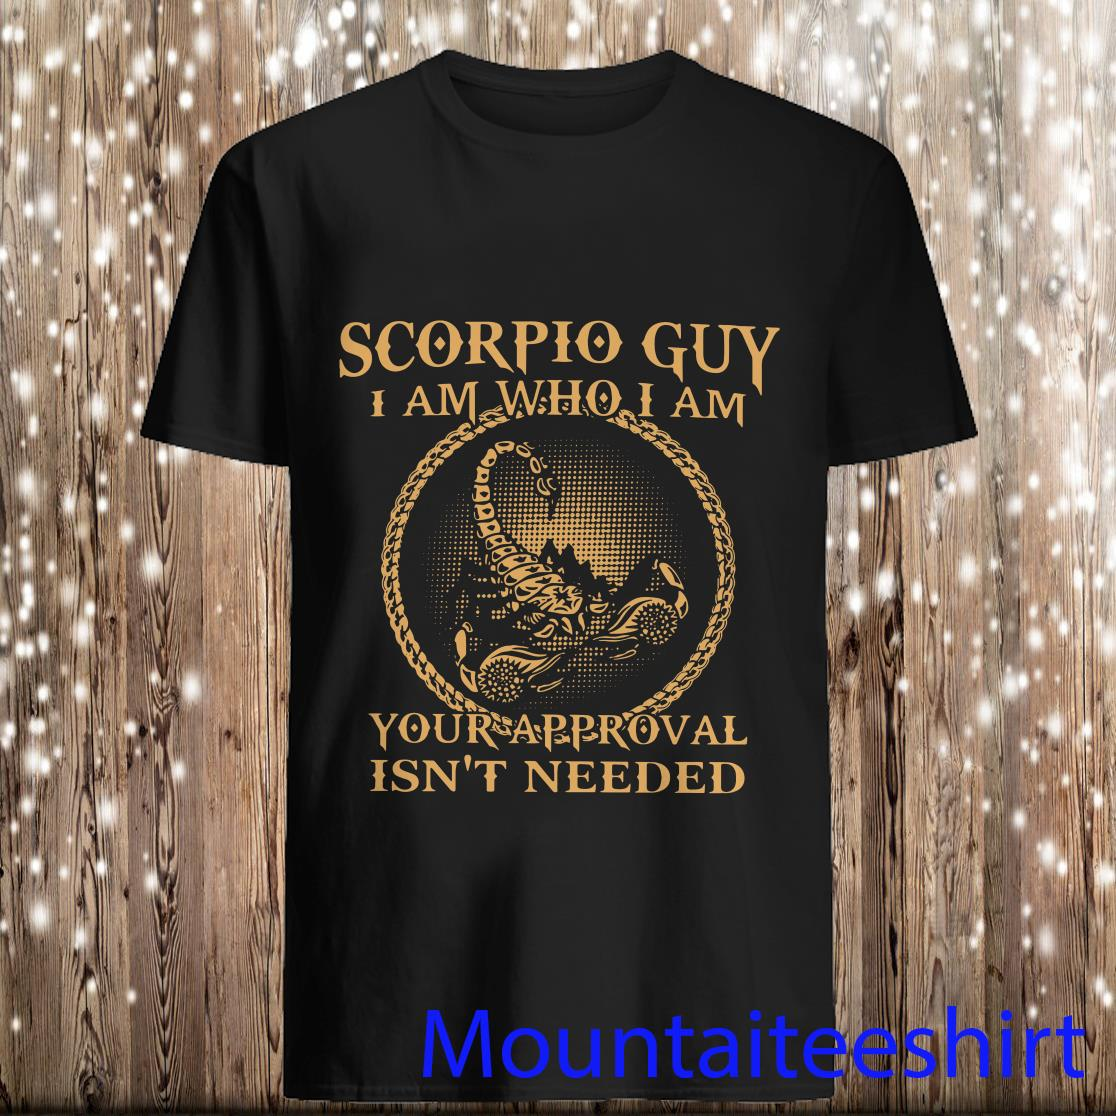 Scorpio Guy I Am Who I Am Your Approval Isn't Needed Shirt